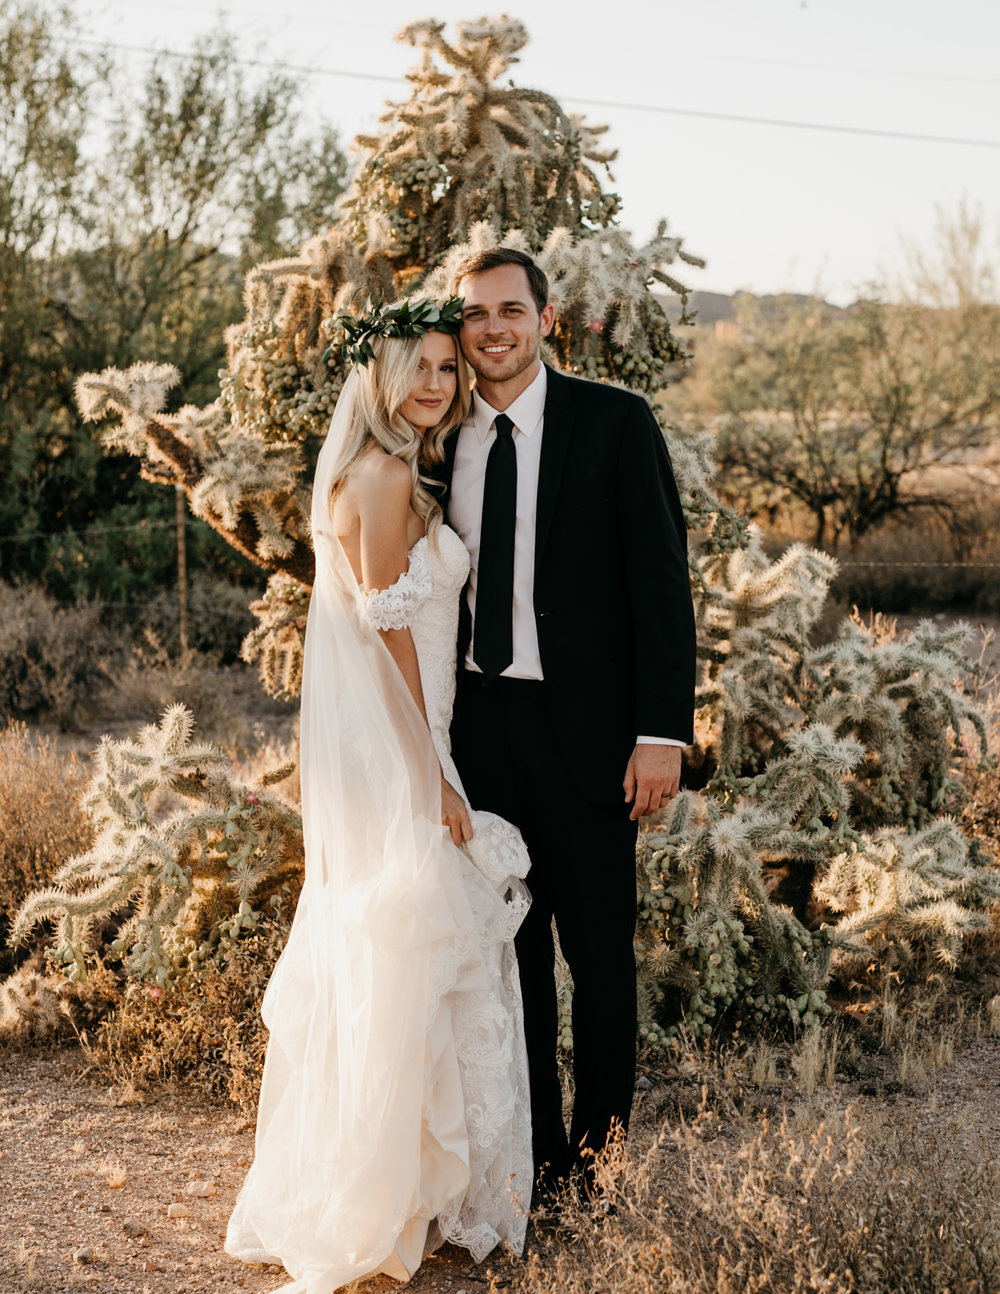 All You Need is Love and Doughnuts!  - with Tremaine Ranch - Arizona Wedding & Event, Vintage, Furniture, Tableware, & Specialty Rentals in Phoenix, Tucson, Flagstaff, Sedona, Tempe, Chandler, Mesa, Gilbert, Prescott, Payson33.jpg